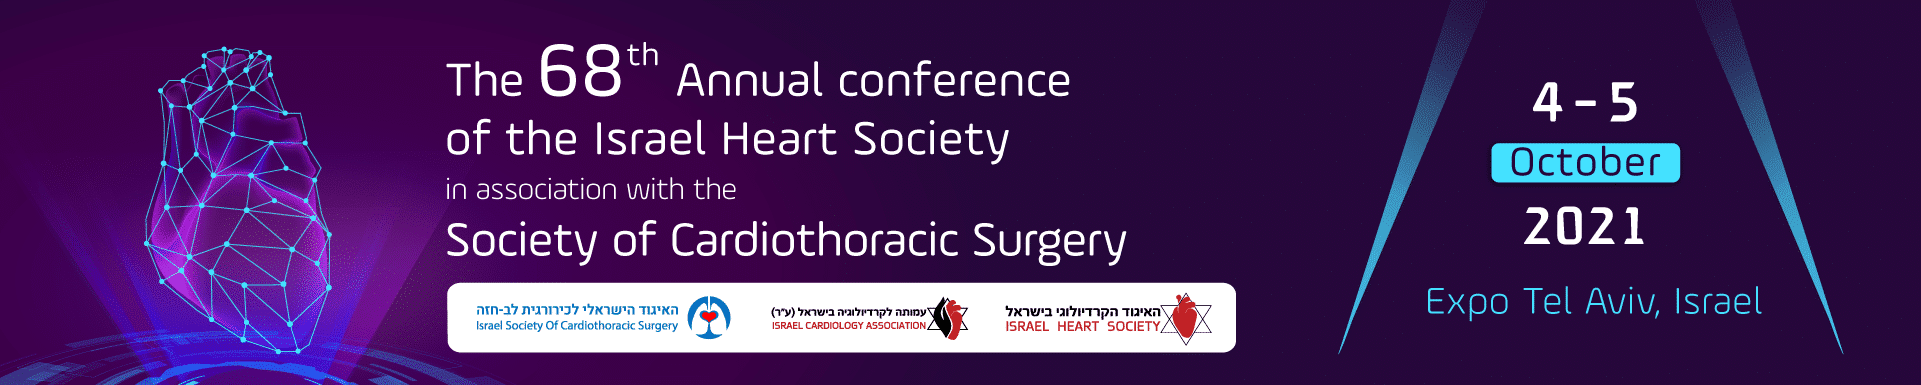 The 68th Annual Conference of the Israel Heart Society in association with the Israel Society of Cardiothoracic Surgery